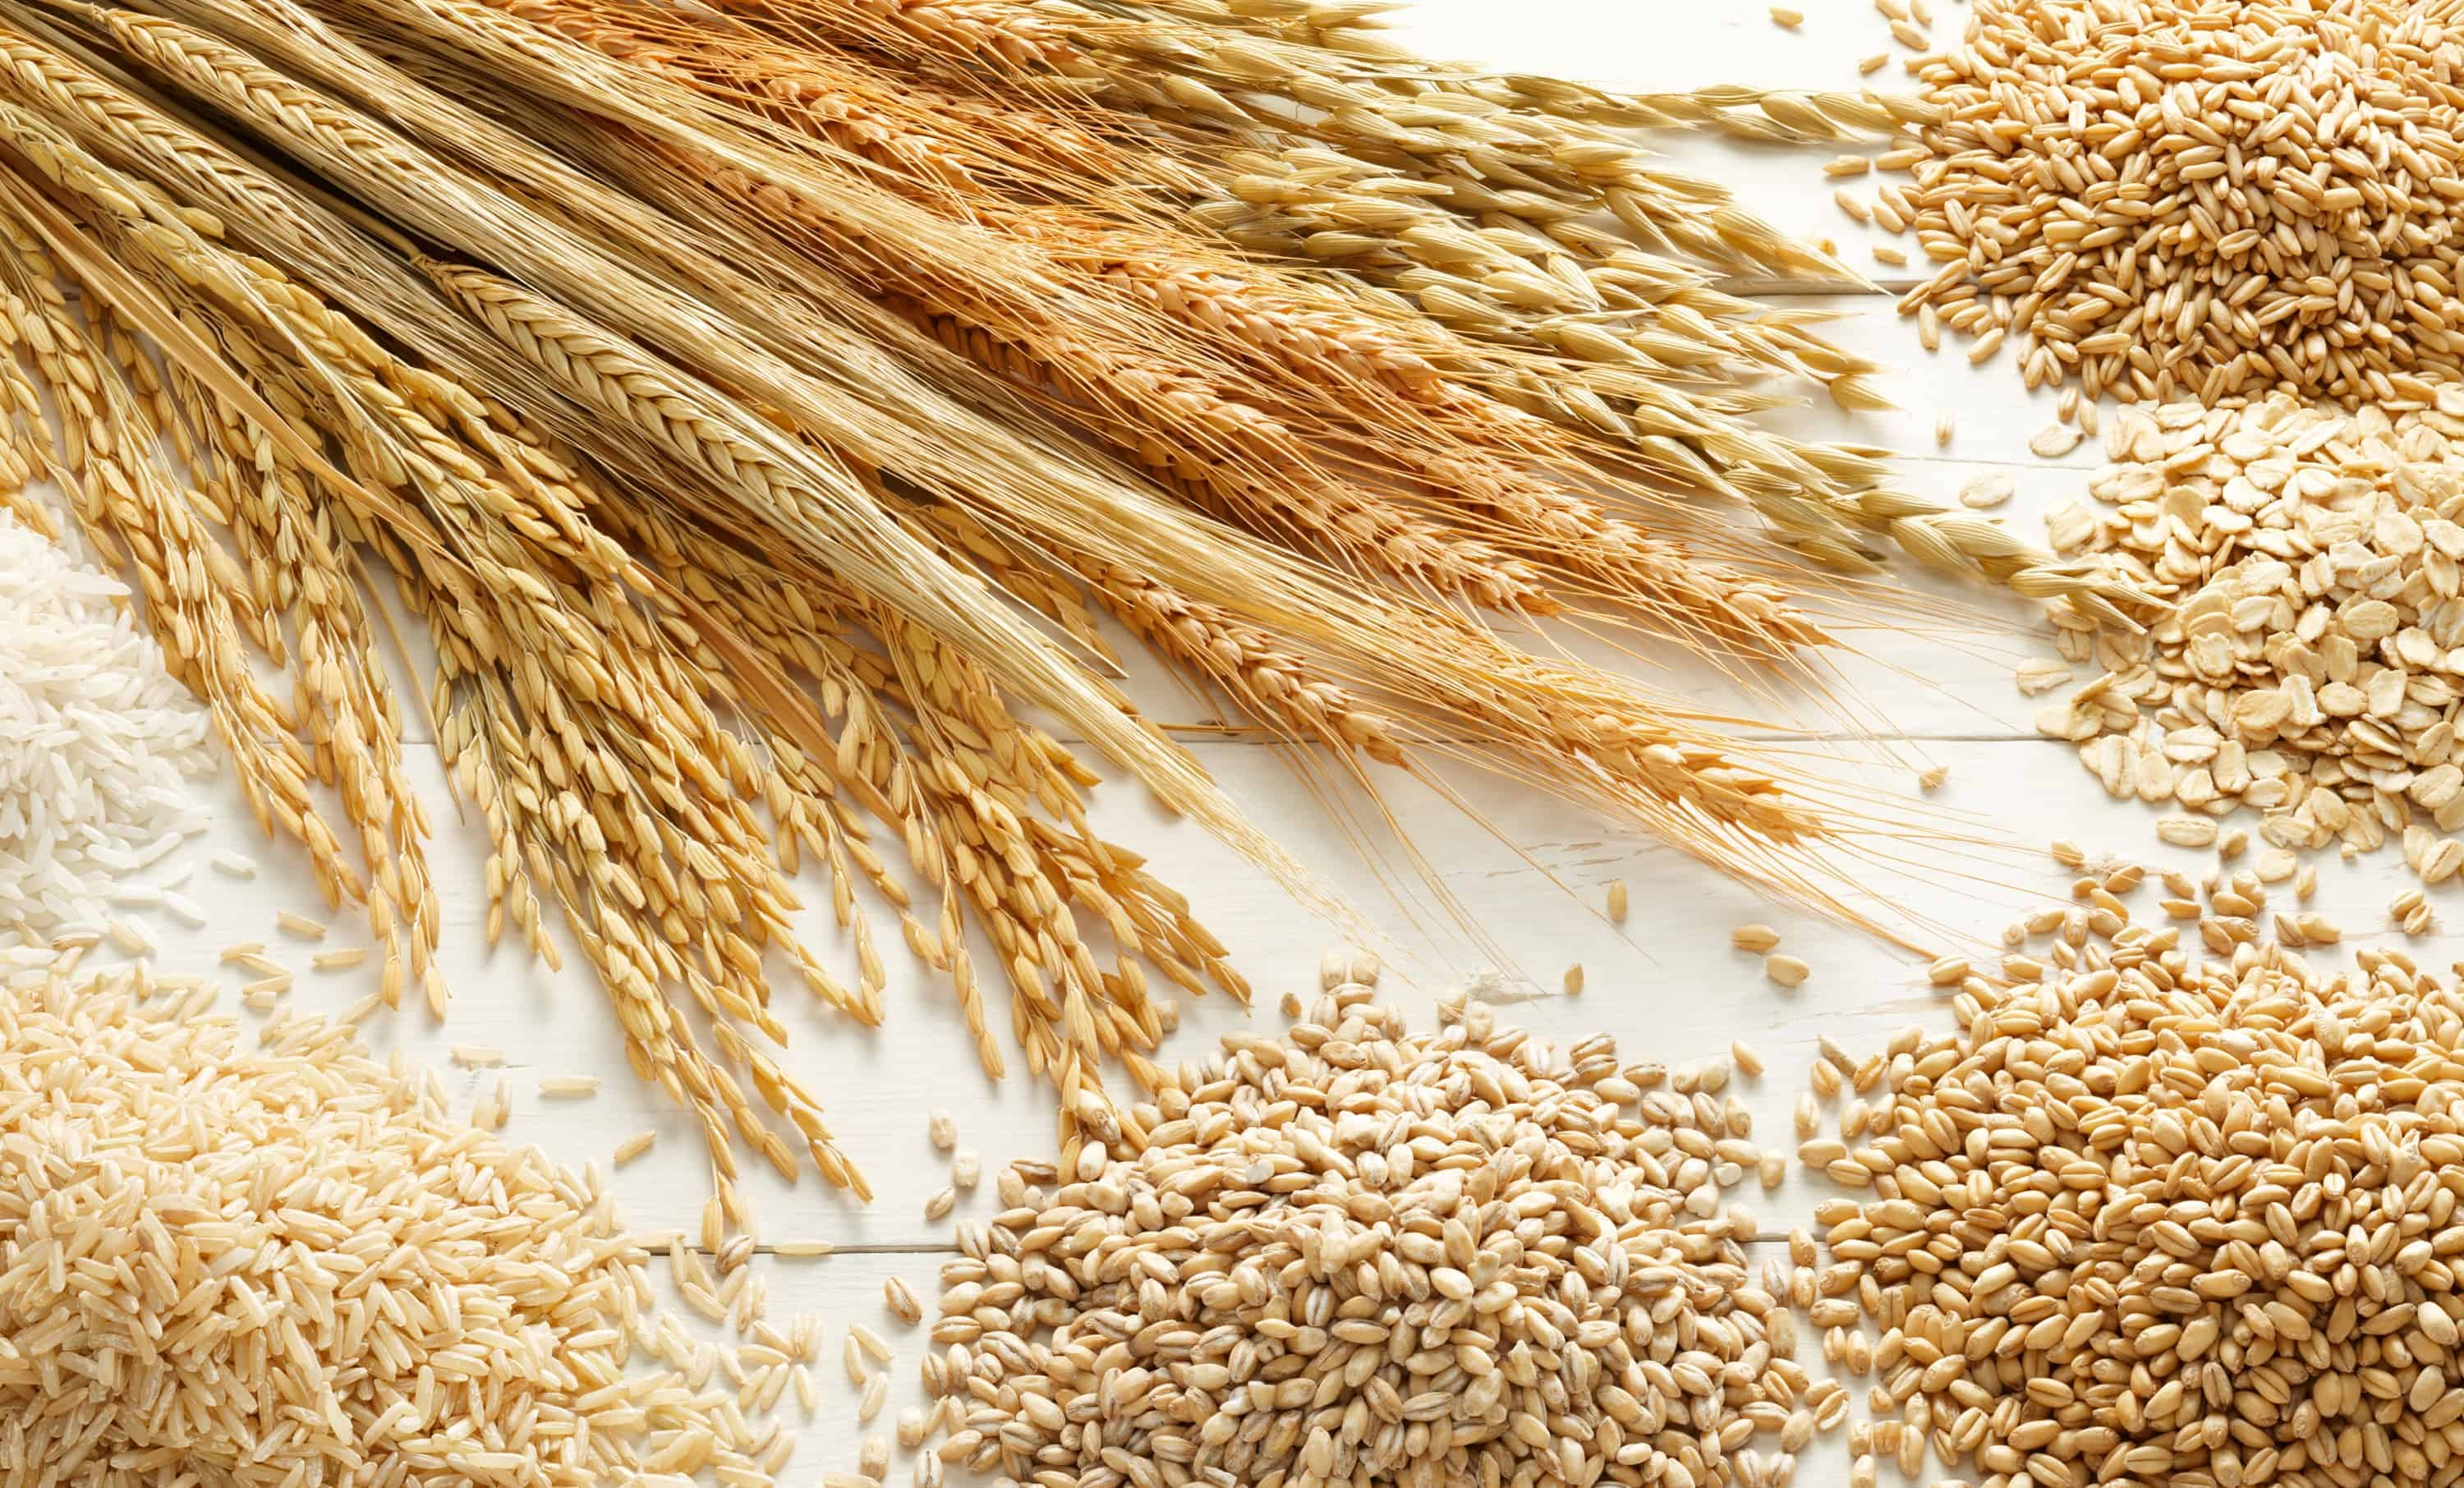 Why Whole Grains Matter